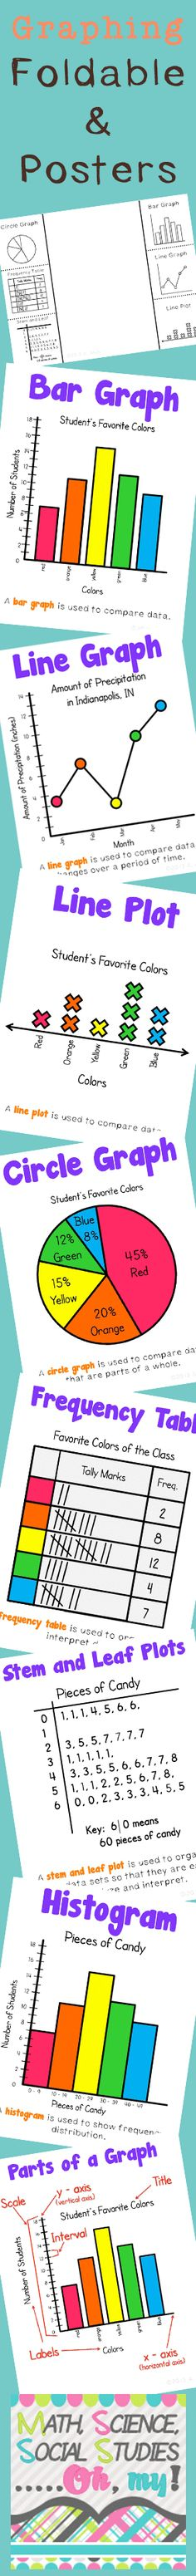 foldable with bar graph, line graph, line plot, circle graph, frequency table and stem & leaf plot